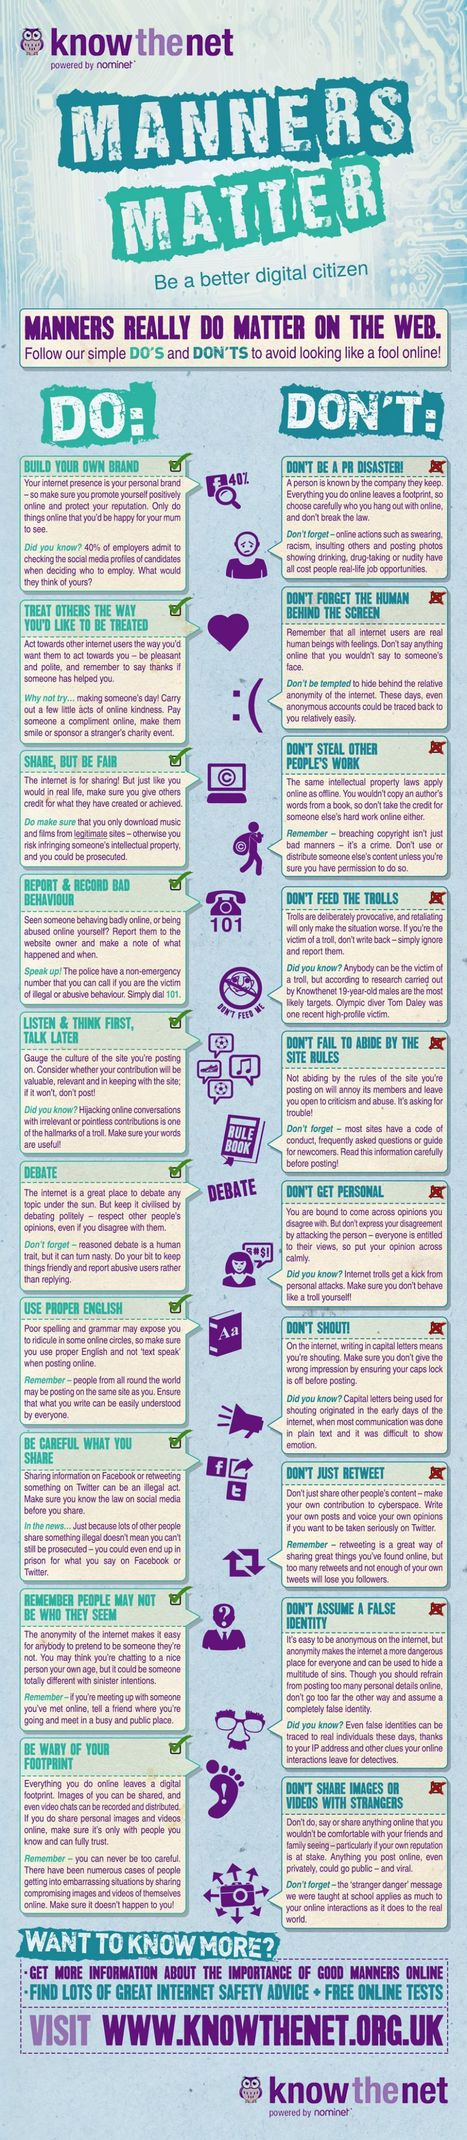 Manners Matter Netiquette [Infographic] | Social media enabling connected learning | Scoop.it